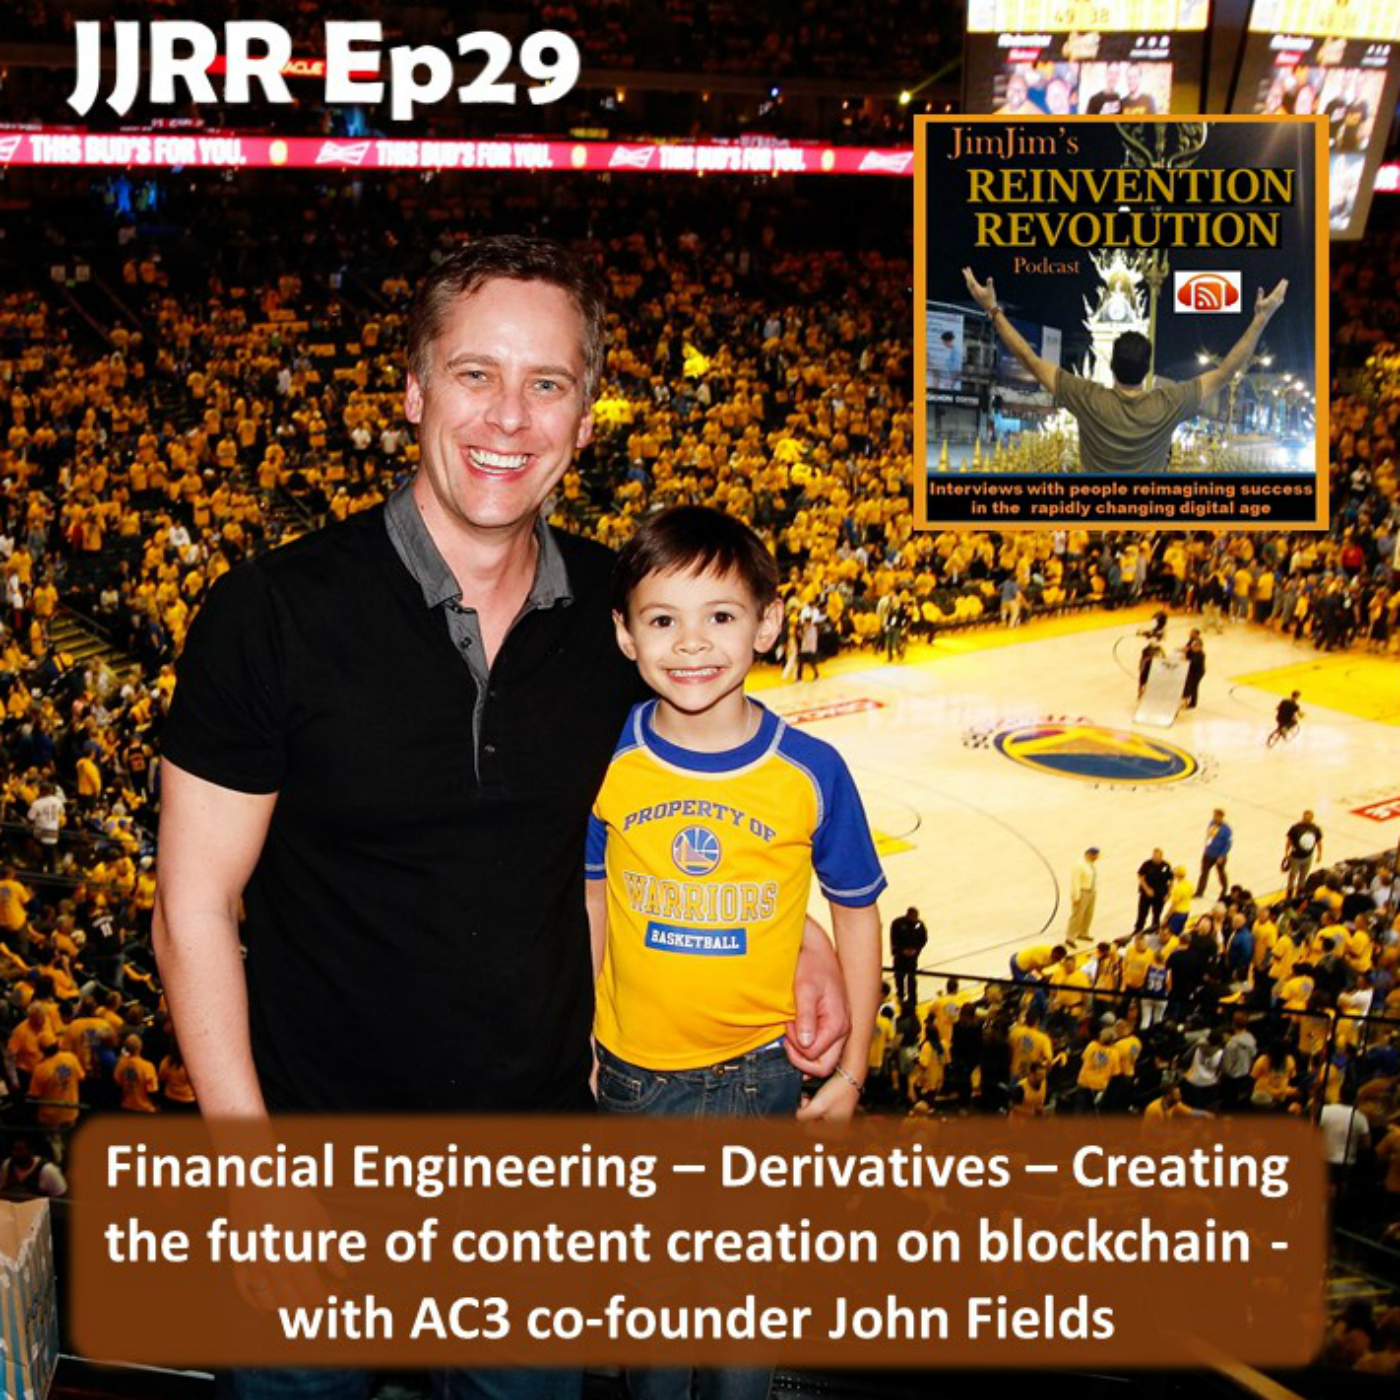 JJRR Ep29 Financial Engineering – Derivatives – Creating the future of content creation on blockchain – with AC3 co-founder John Fields